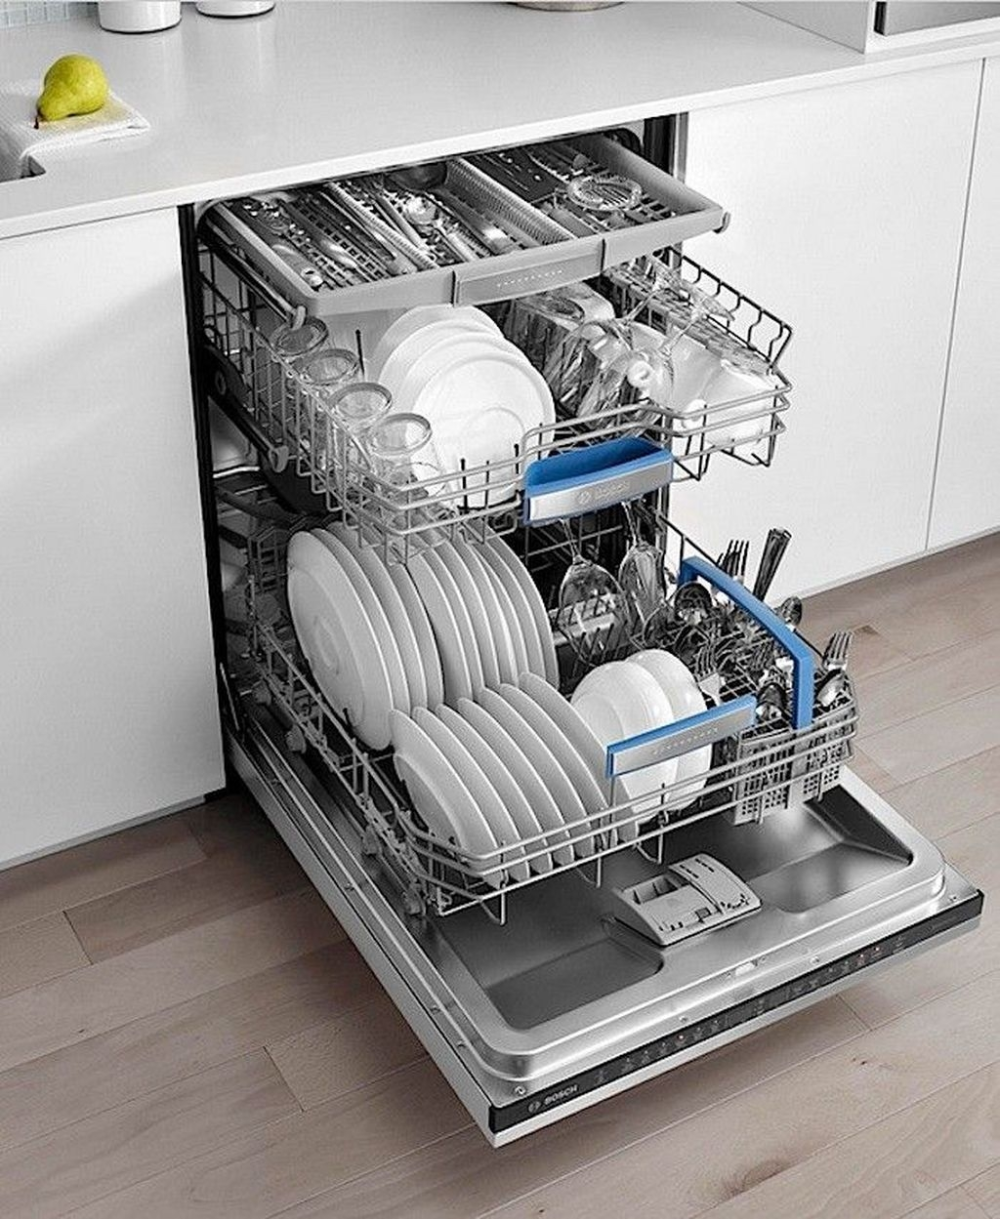 Faces A Hard Times To Clean Your Dishwasher There Are 5 Easy Step To Make It Done Thelivin Best Kitchen Cabinets Home Appliances Outdoor Kitchen Appliances